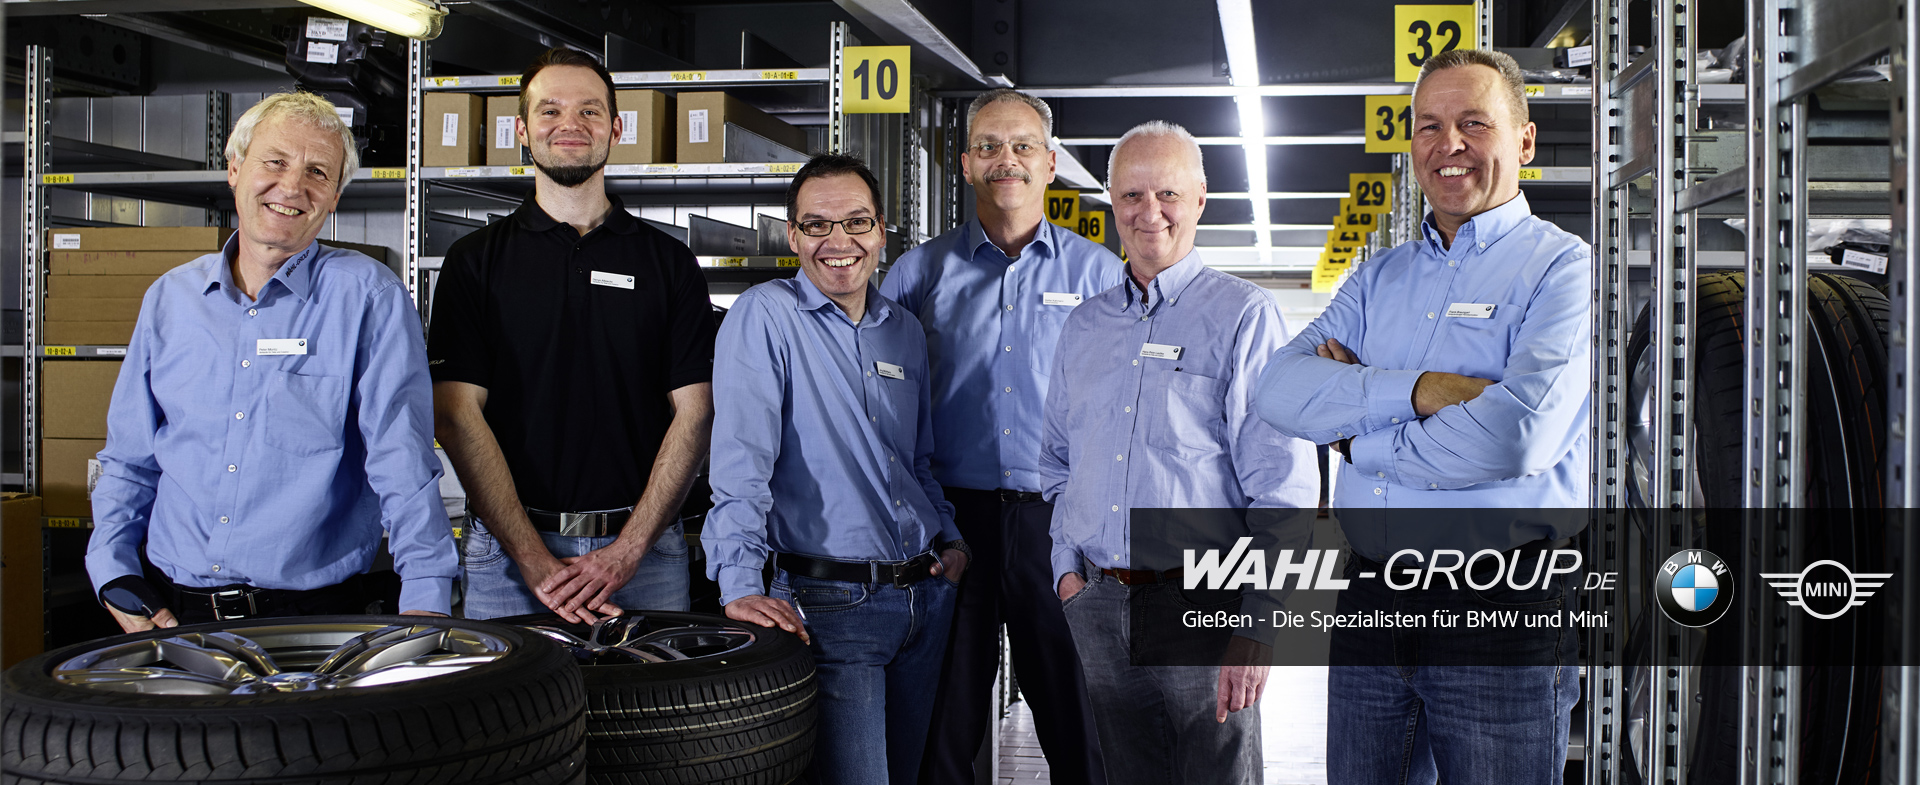 ASW Wahl GmbH & Co. KG